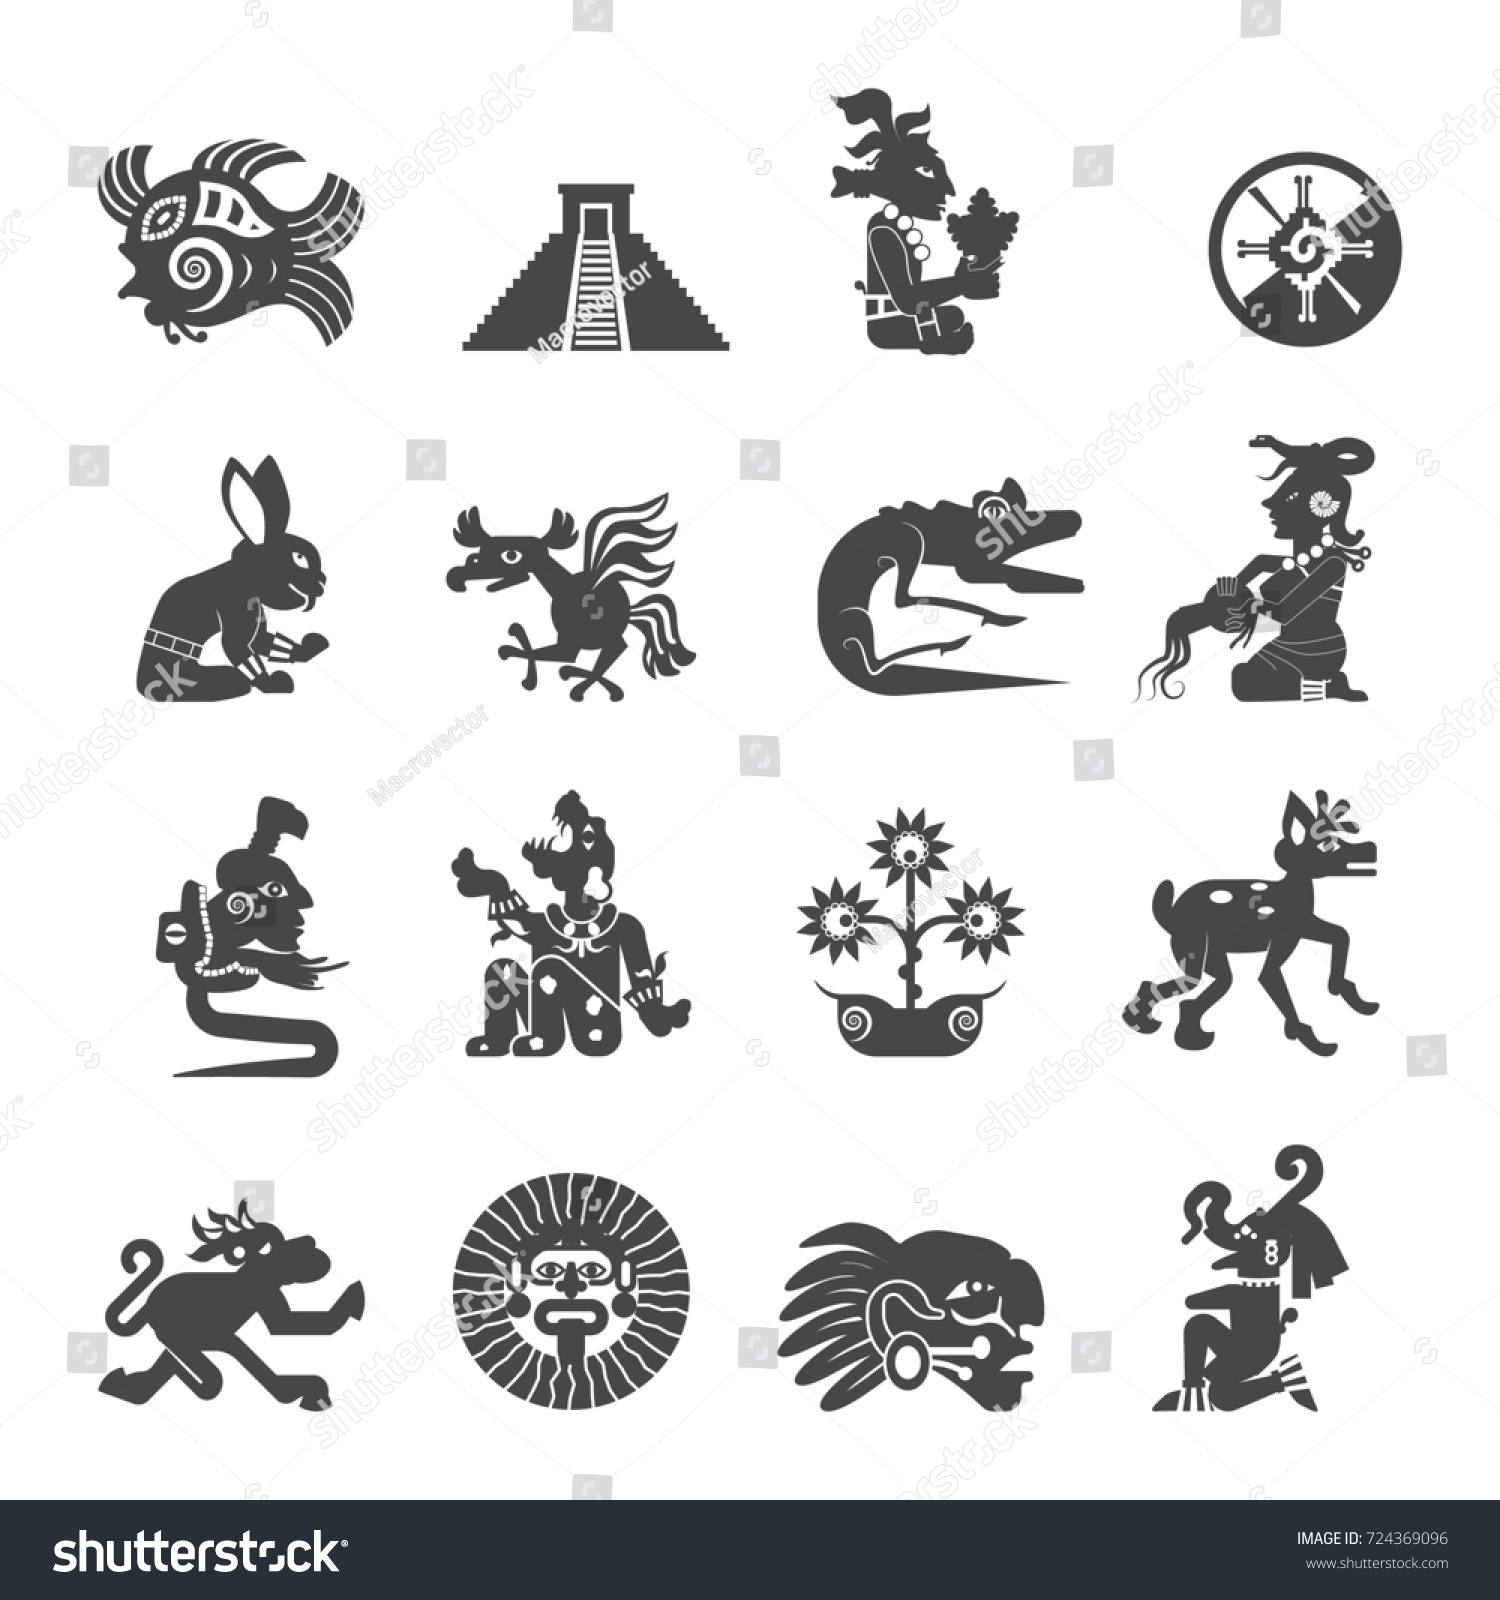 Maya writing ancient script black icons stock illustration maya writing ancient script black icons collection with astrological signs and sacred symbols abstract isolated illustration biocorpaavc